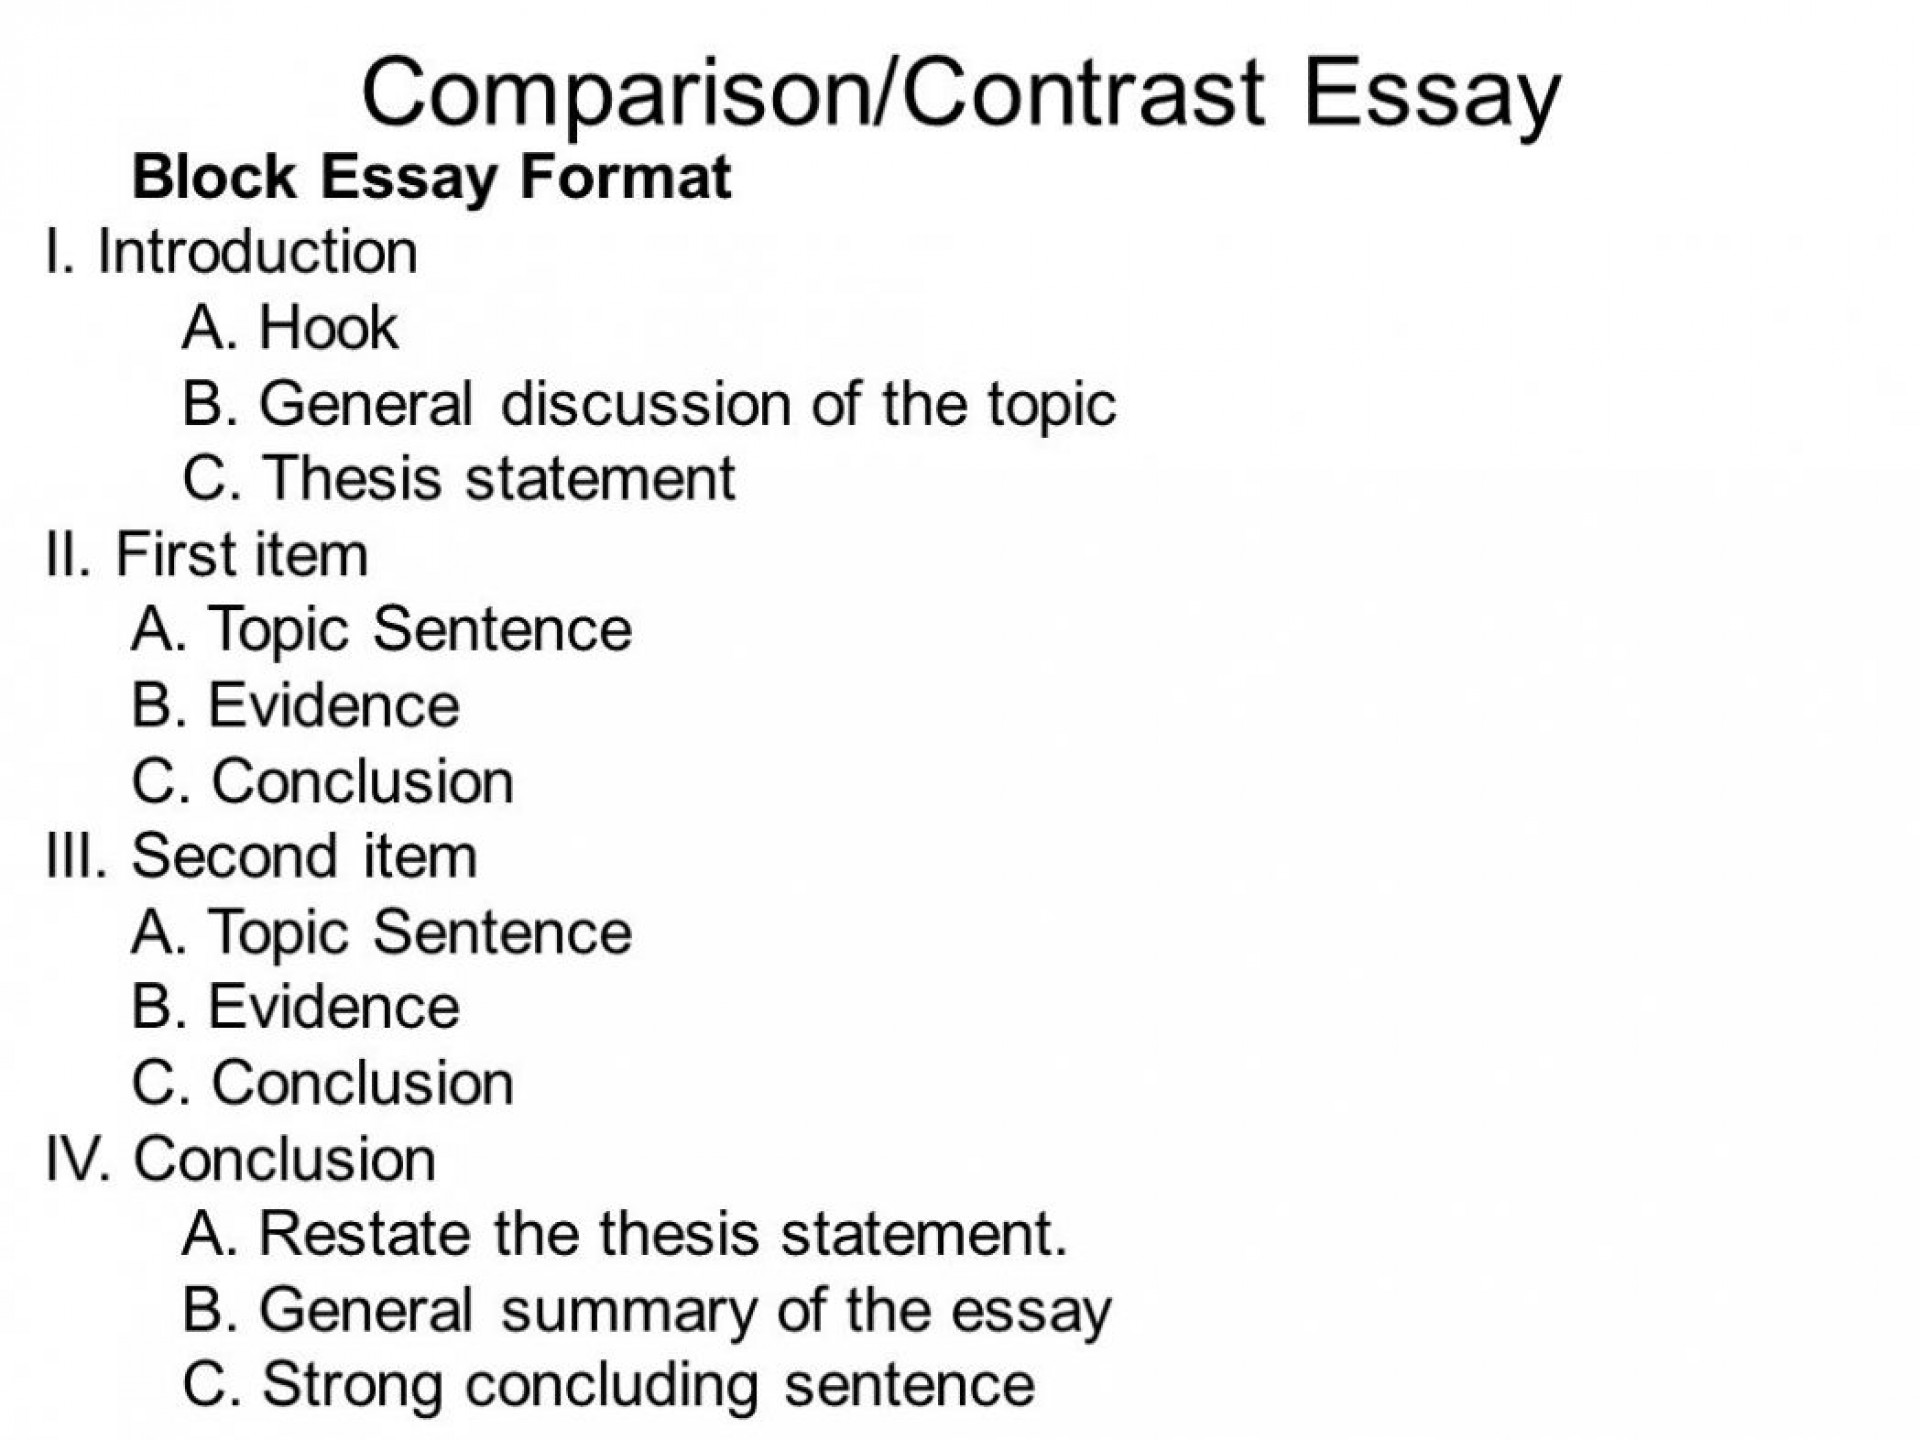 023 Essay Example How To Write Comparison And Contrast